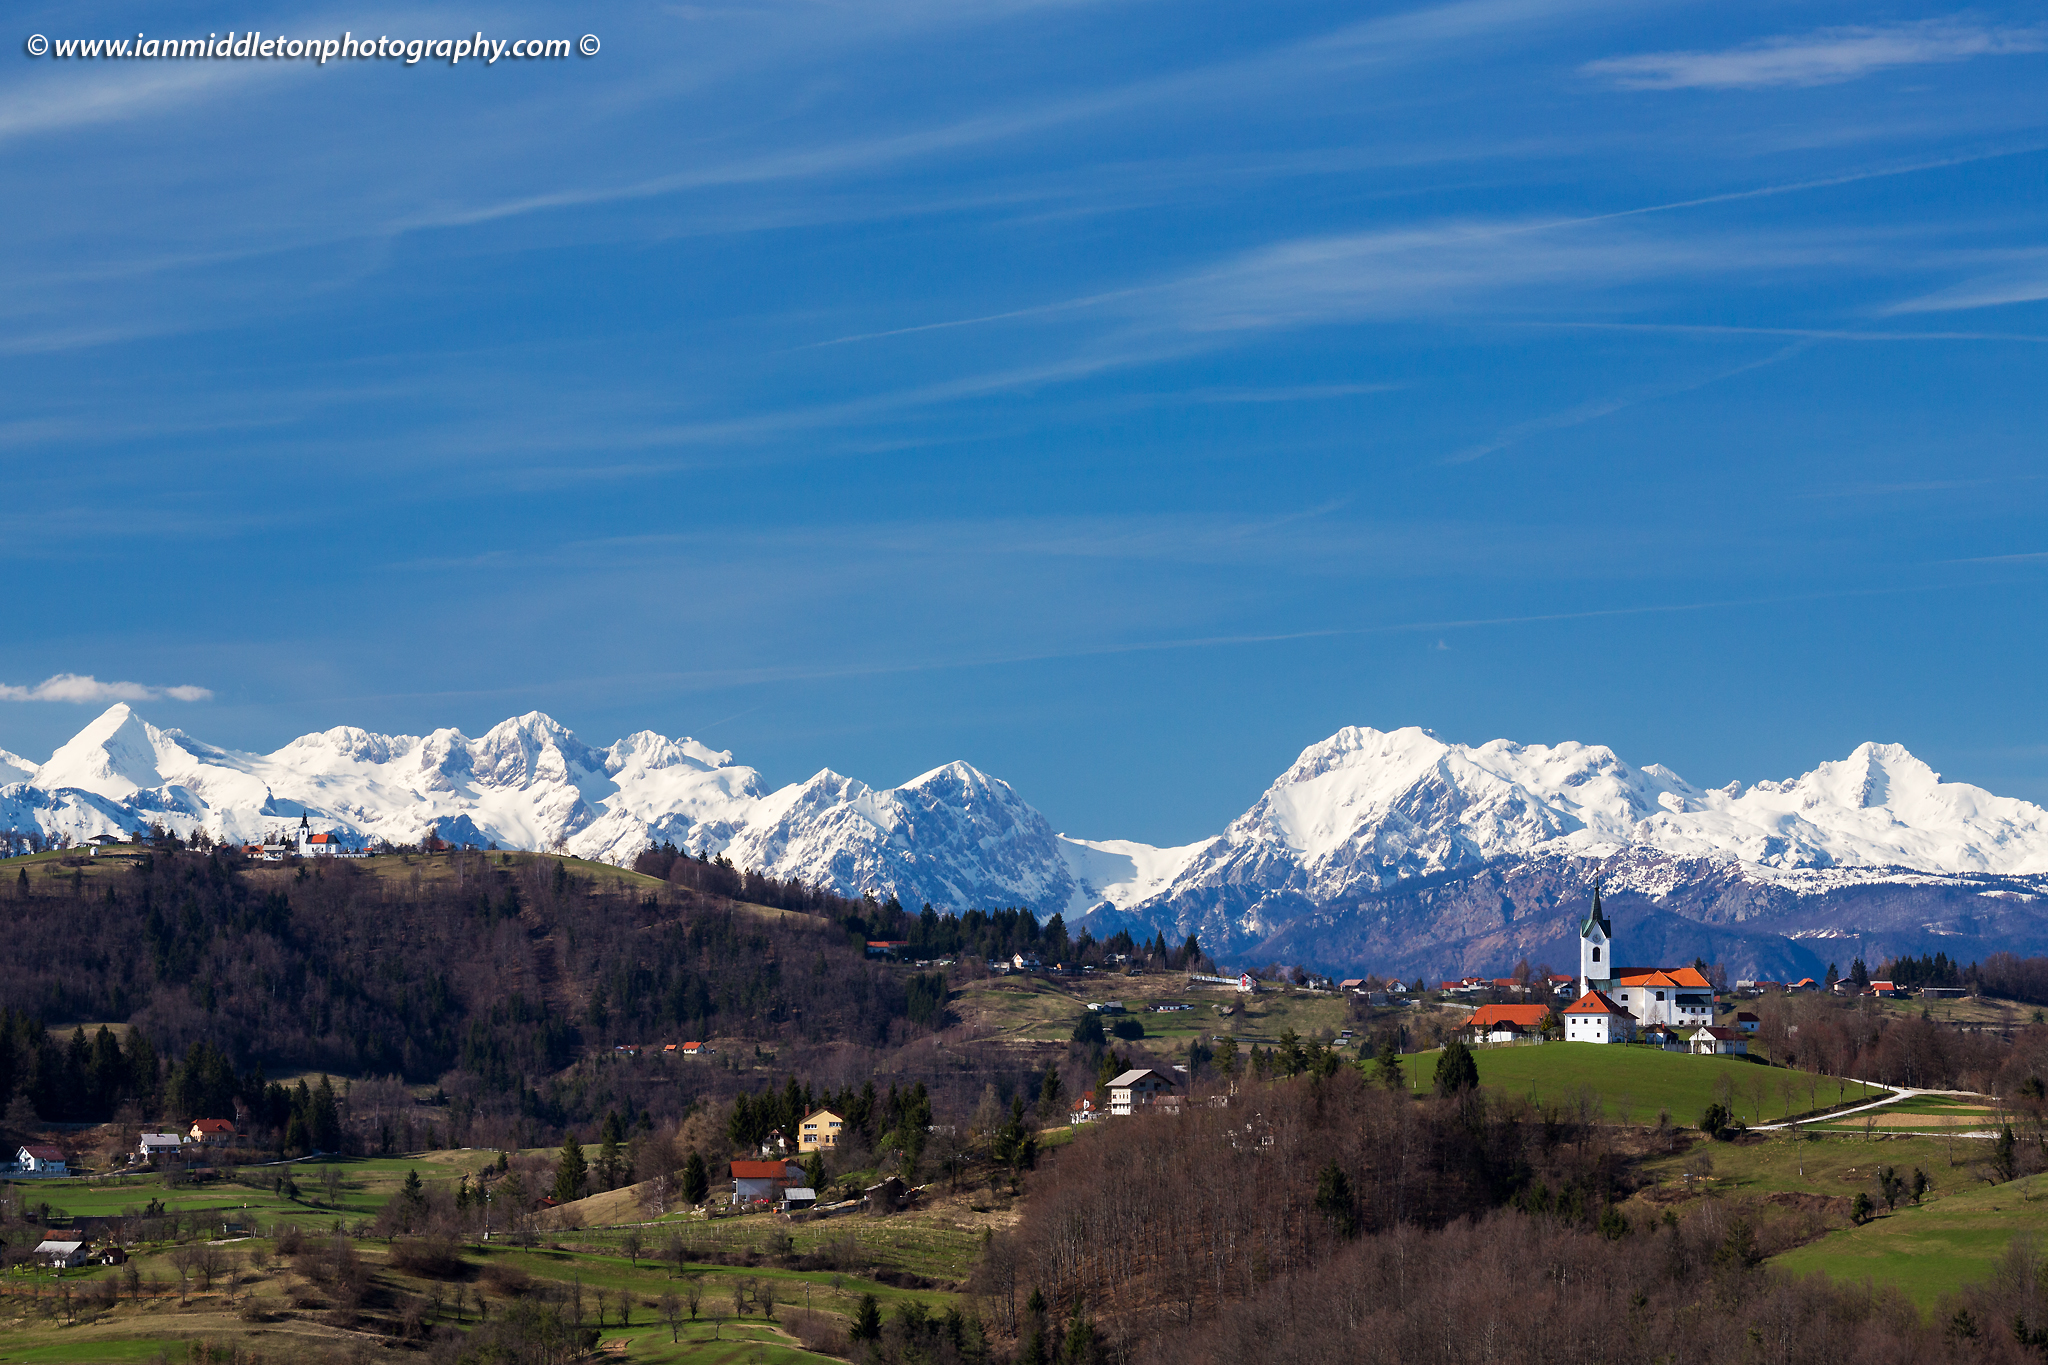 View across to the church of Saint Marjeta in Prezganje and church of Saint Nicholas in the Jance hills to the east of Ljubljana, Slovenia. The snow covered Kamnik Alps form a beautiful backdrop.